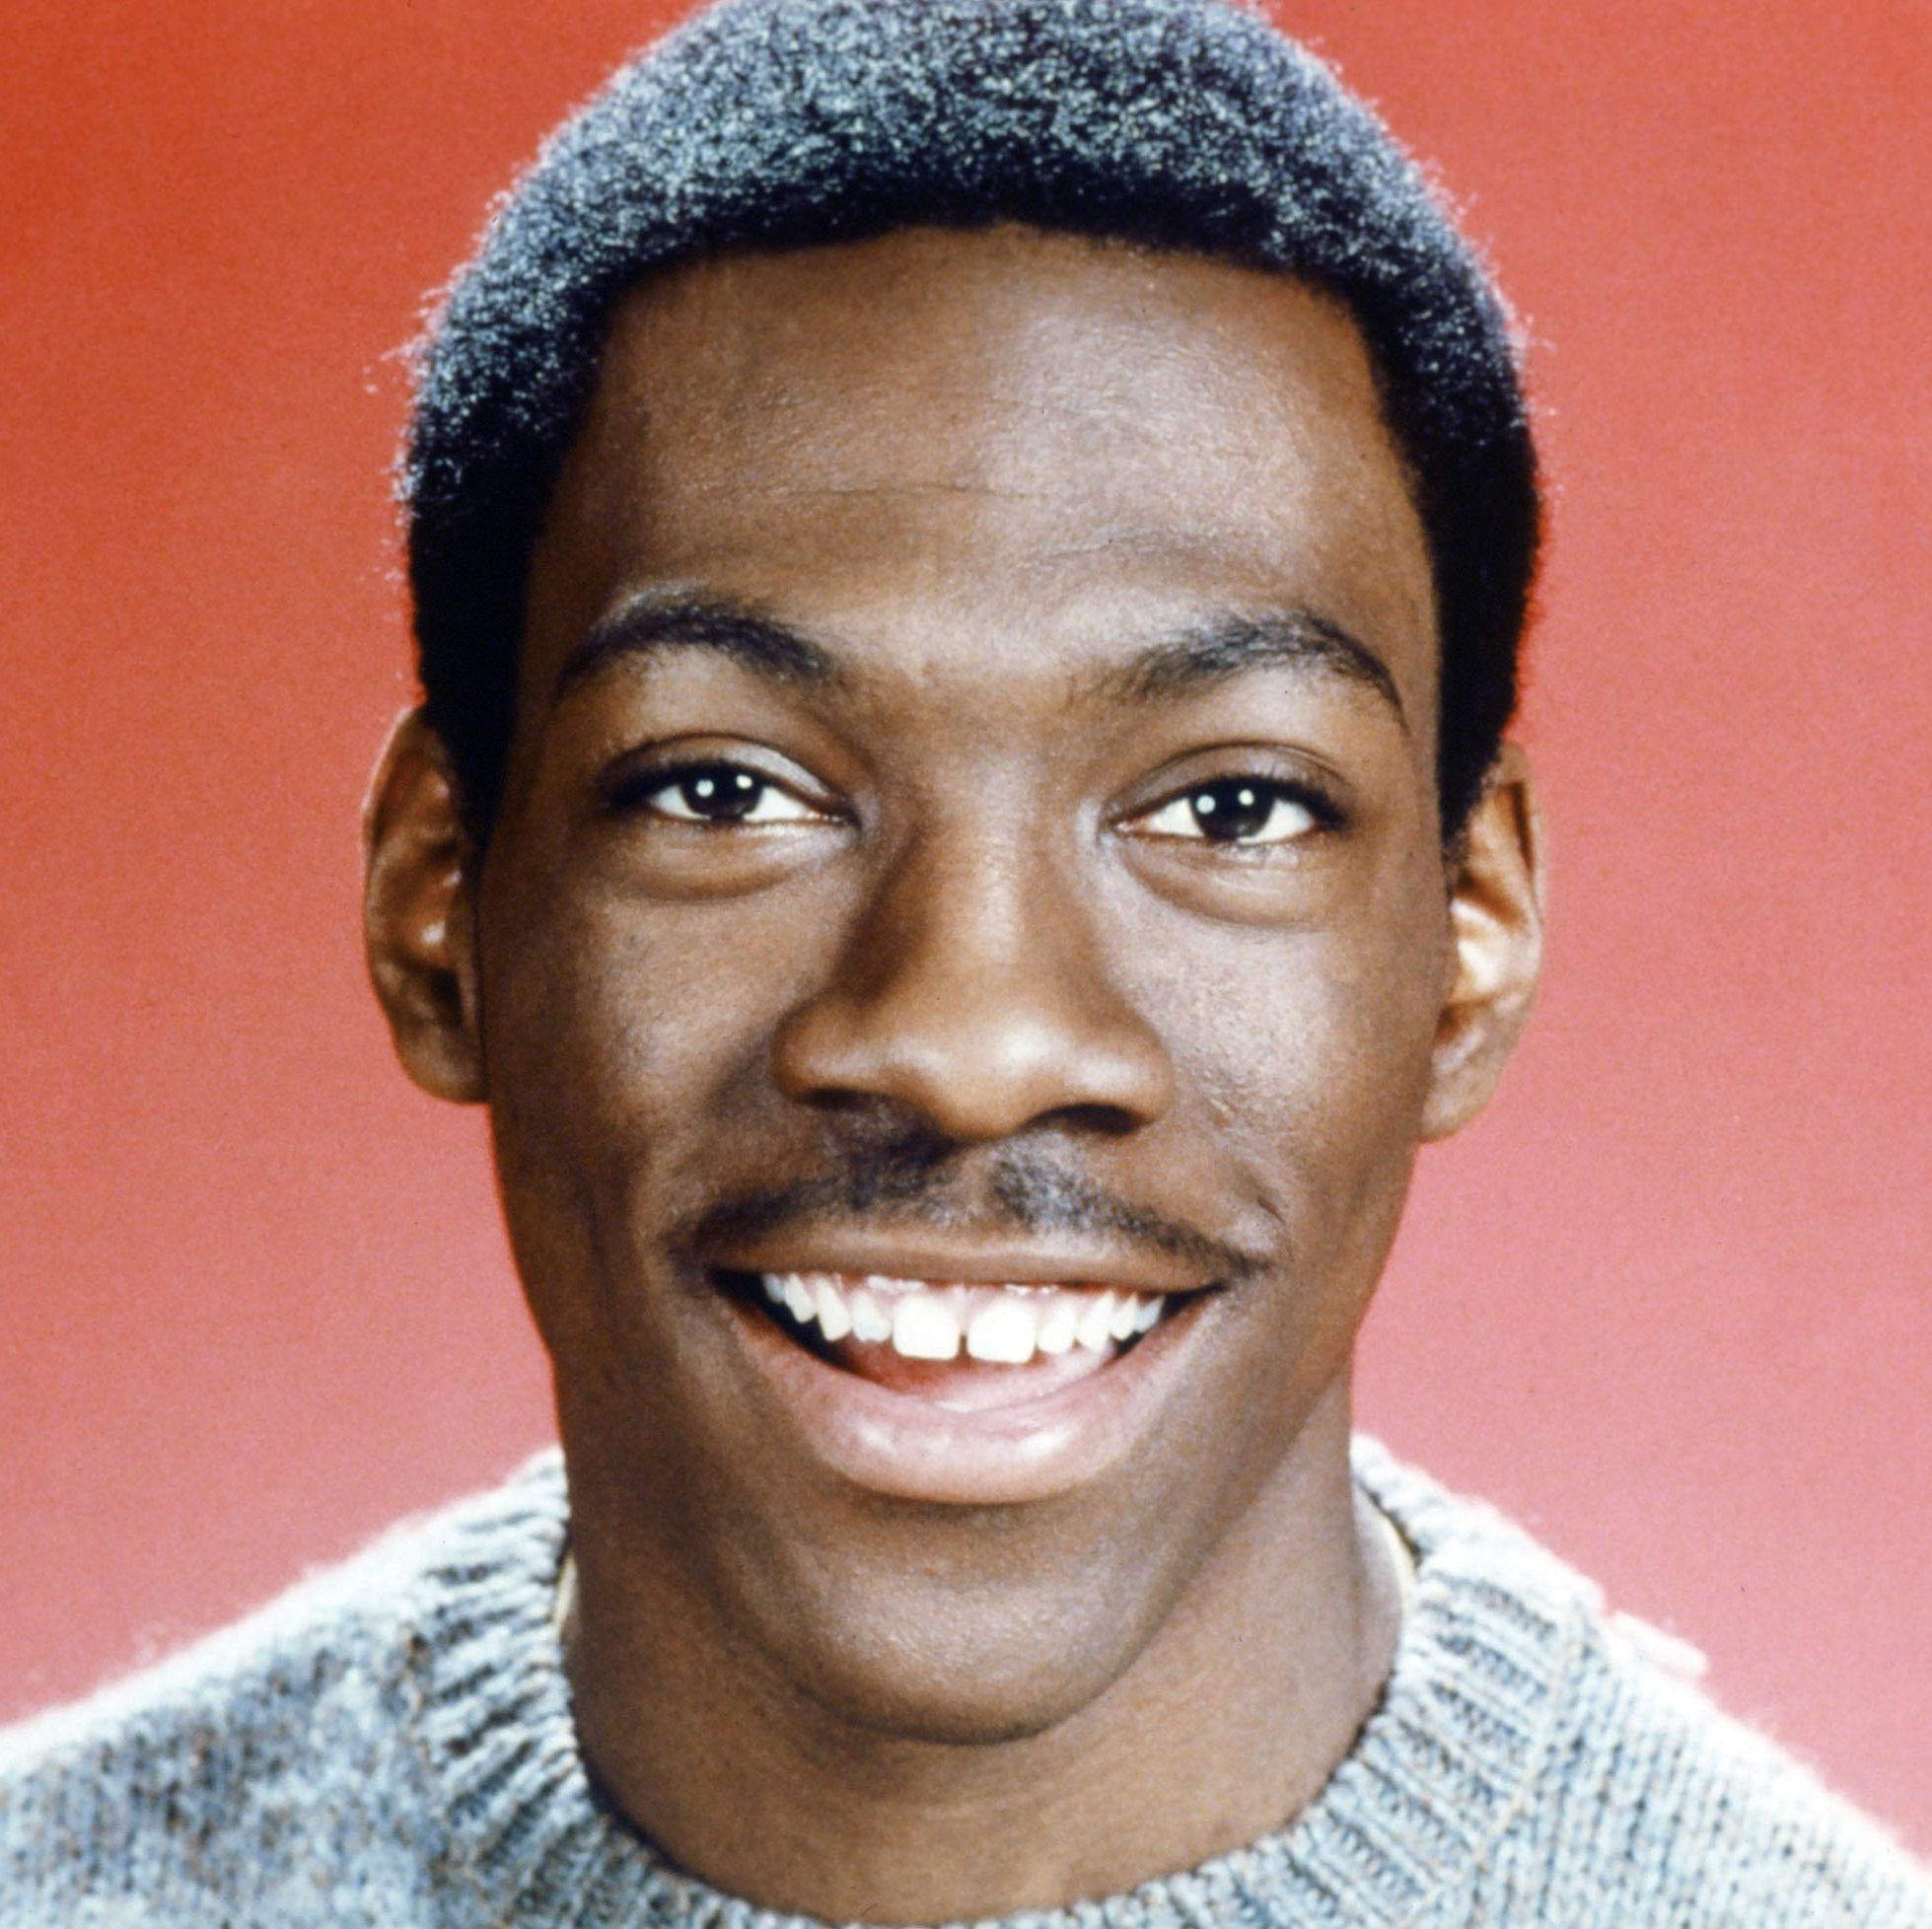 1983: Eddie Murphy The comedian and actor has been performing since the '80s but never seems to age—perhaps he can thank his go-to mustache for that.